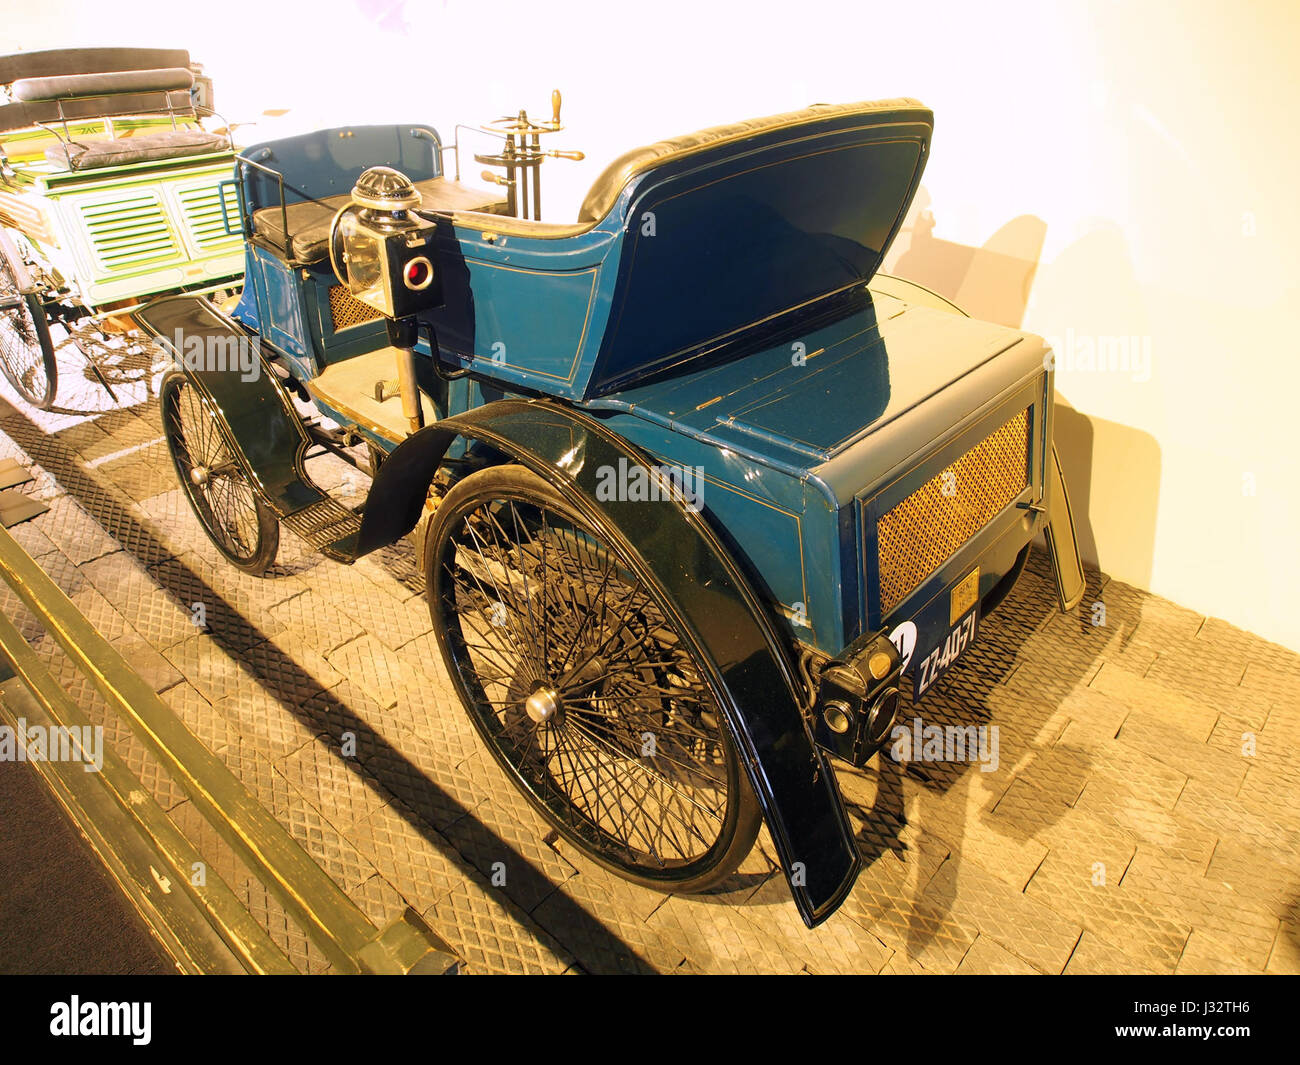 1901 Benz 6-HP Ideal photo2 - Stock Image